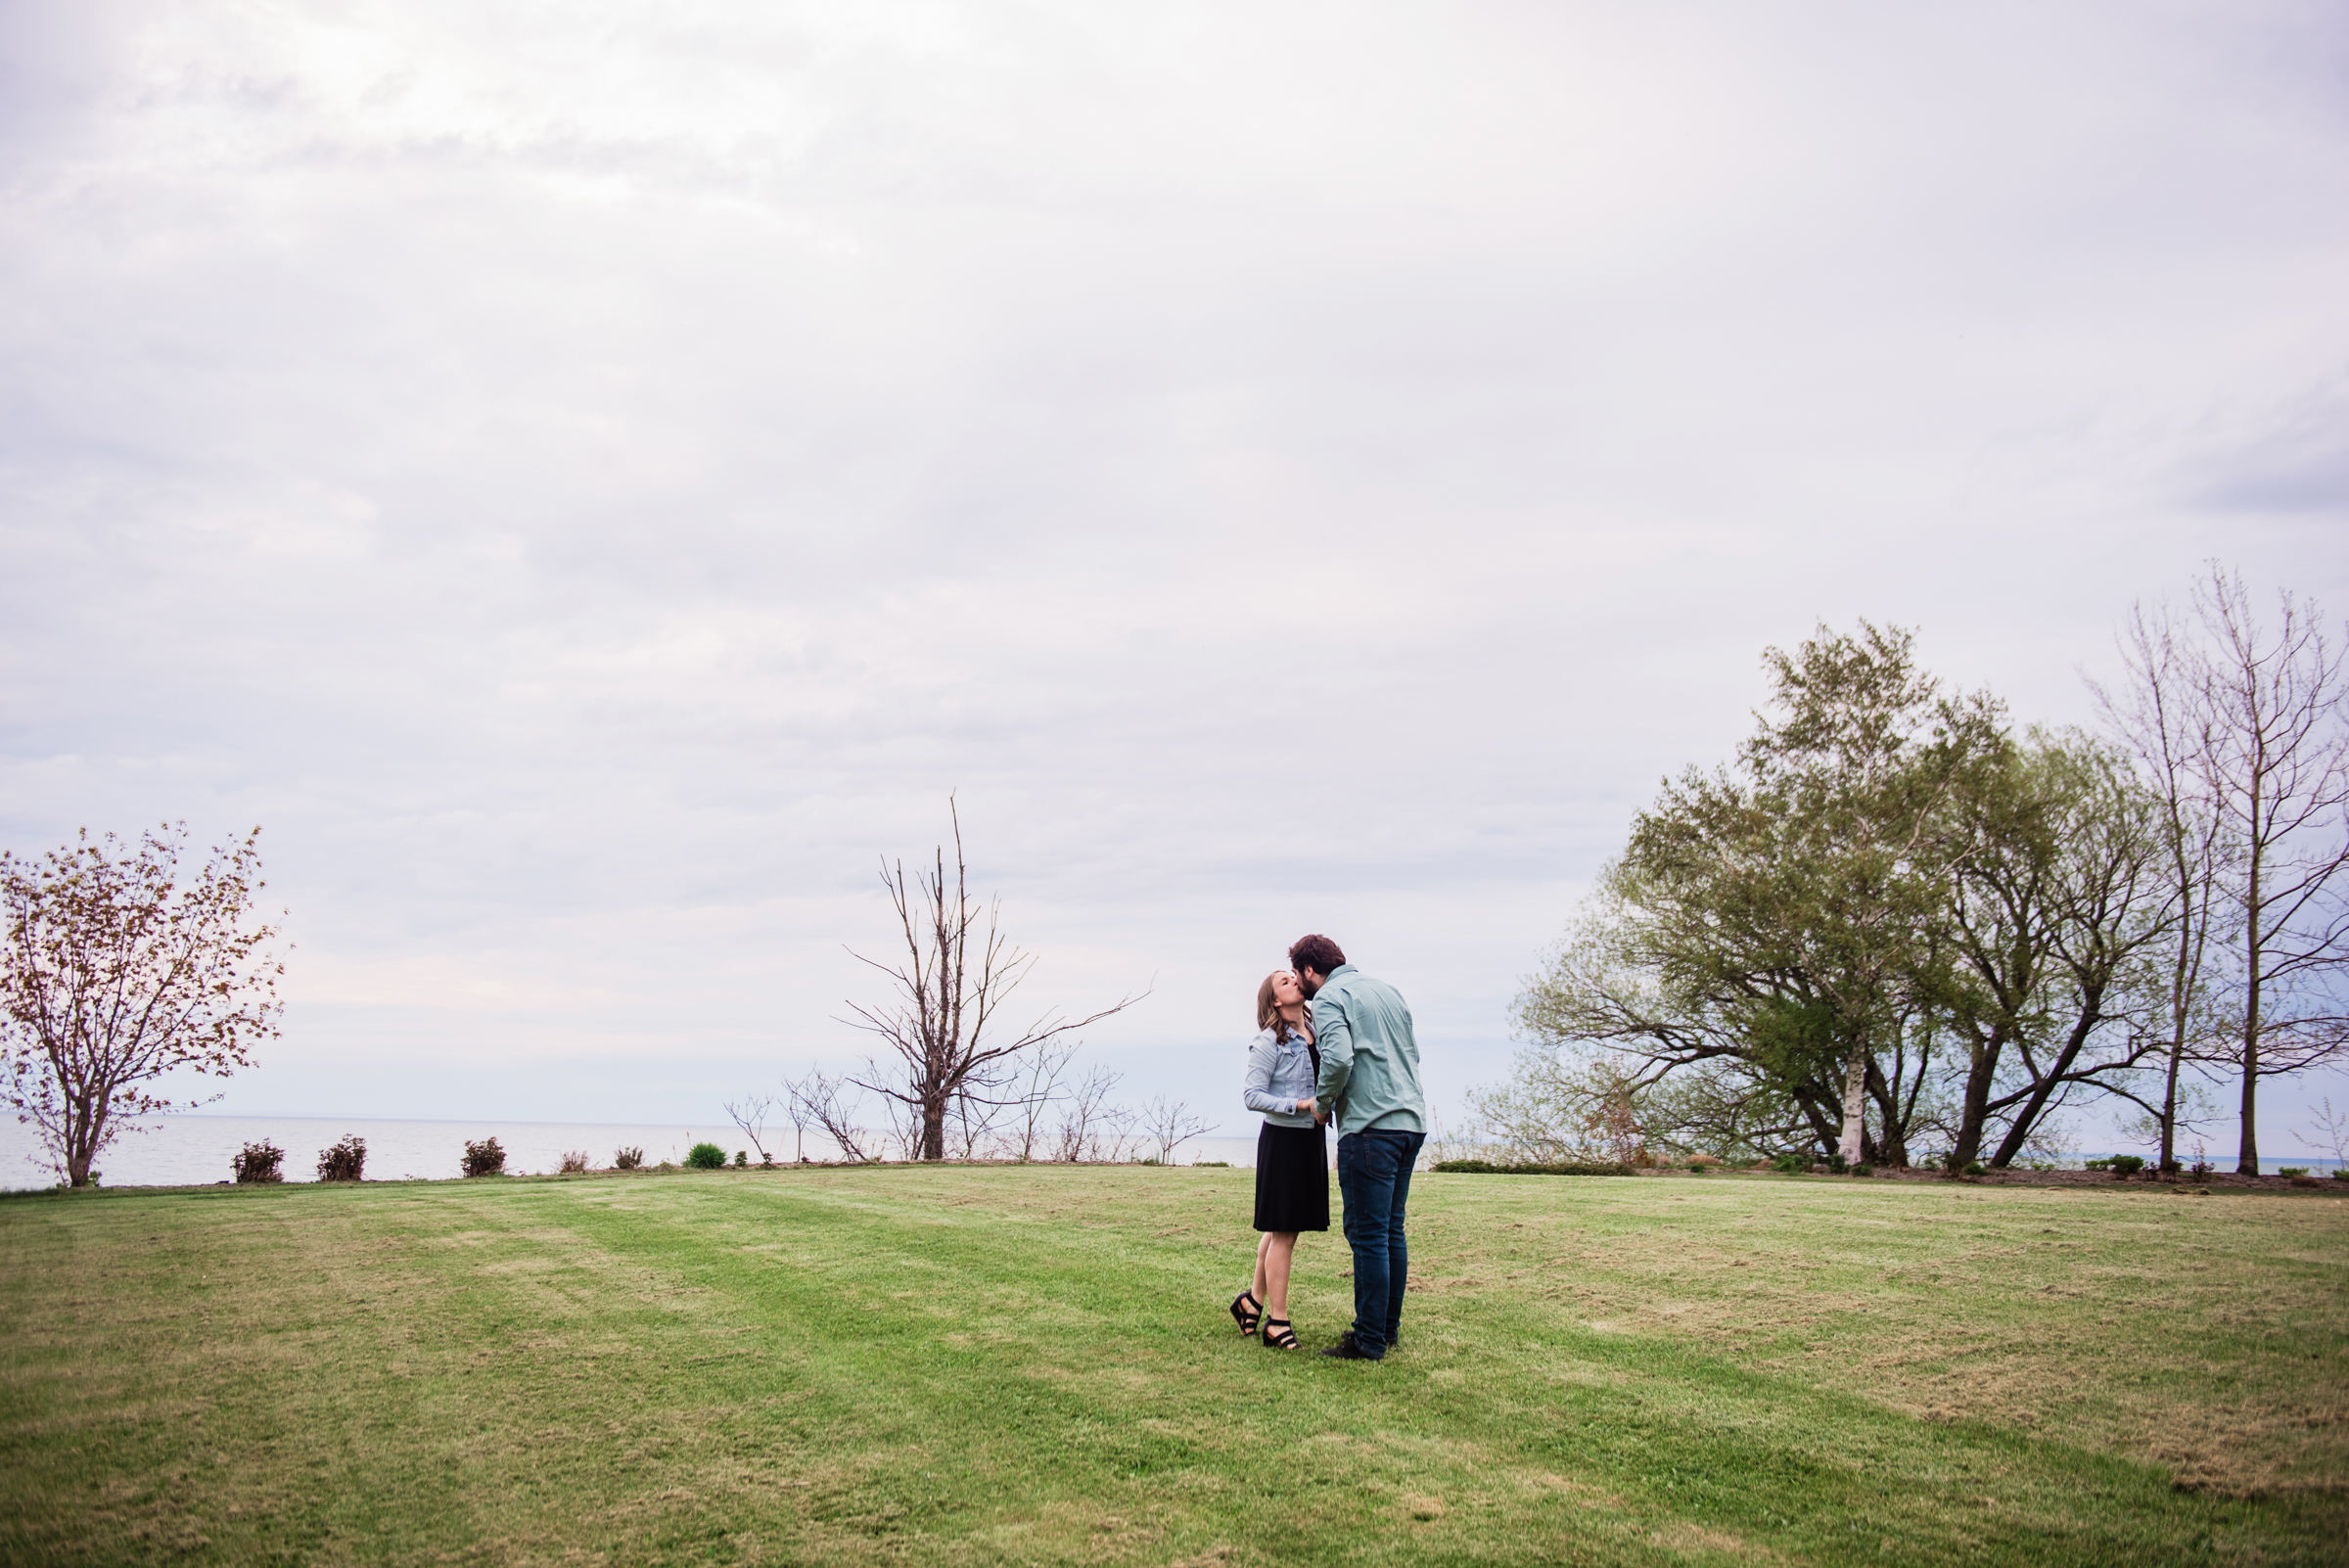 Fox_Farm_Rochester_Couples_Session_JILL_STUDIO_Rochester_NY_Photographer_DSC_7754.jpg